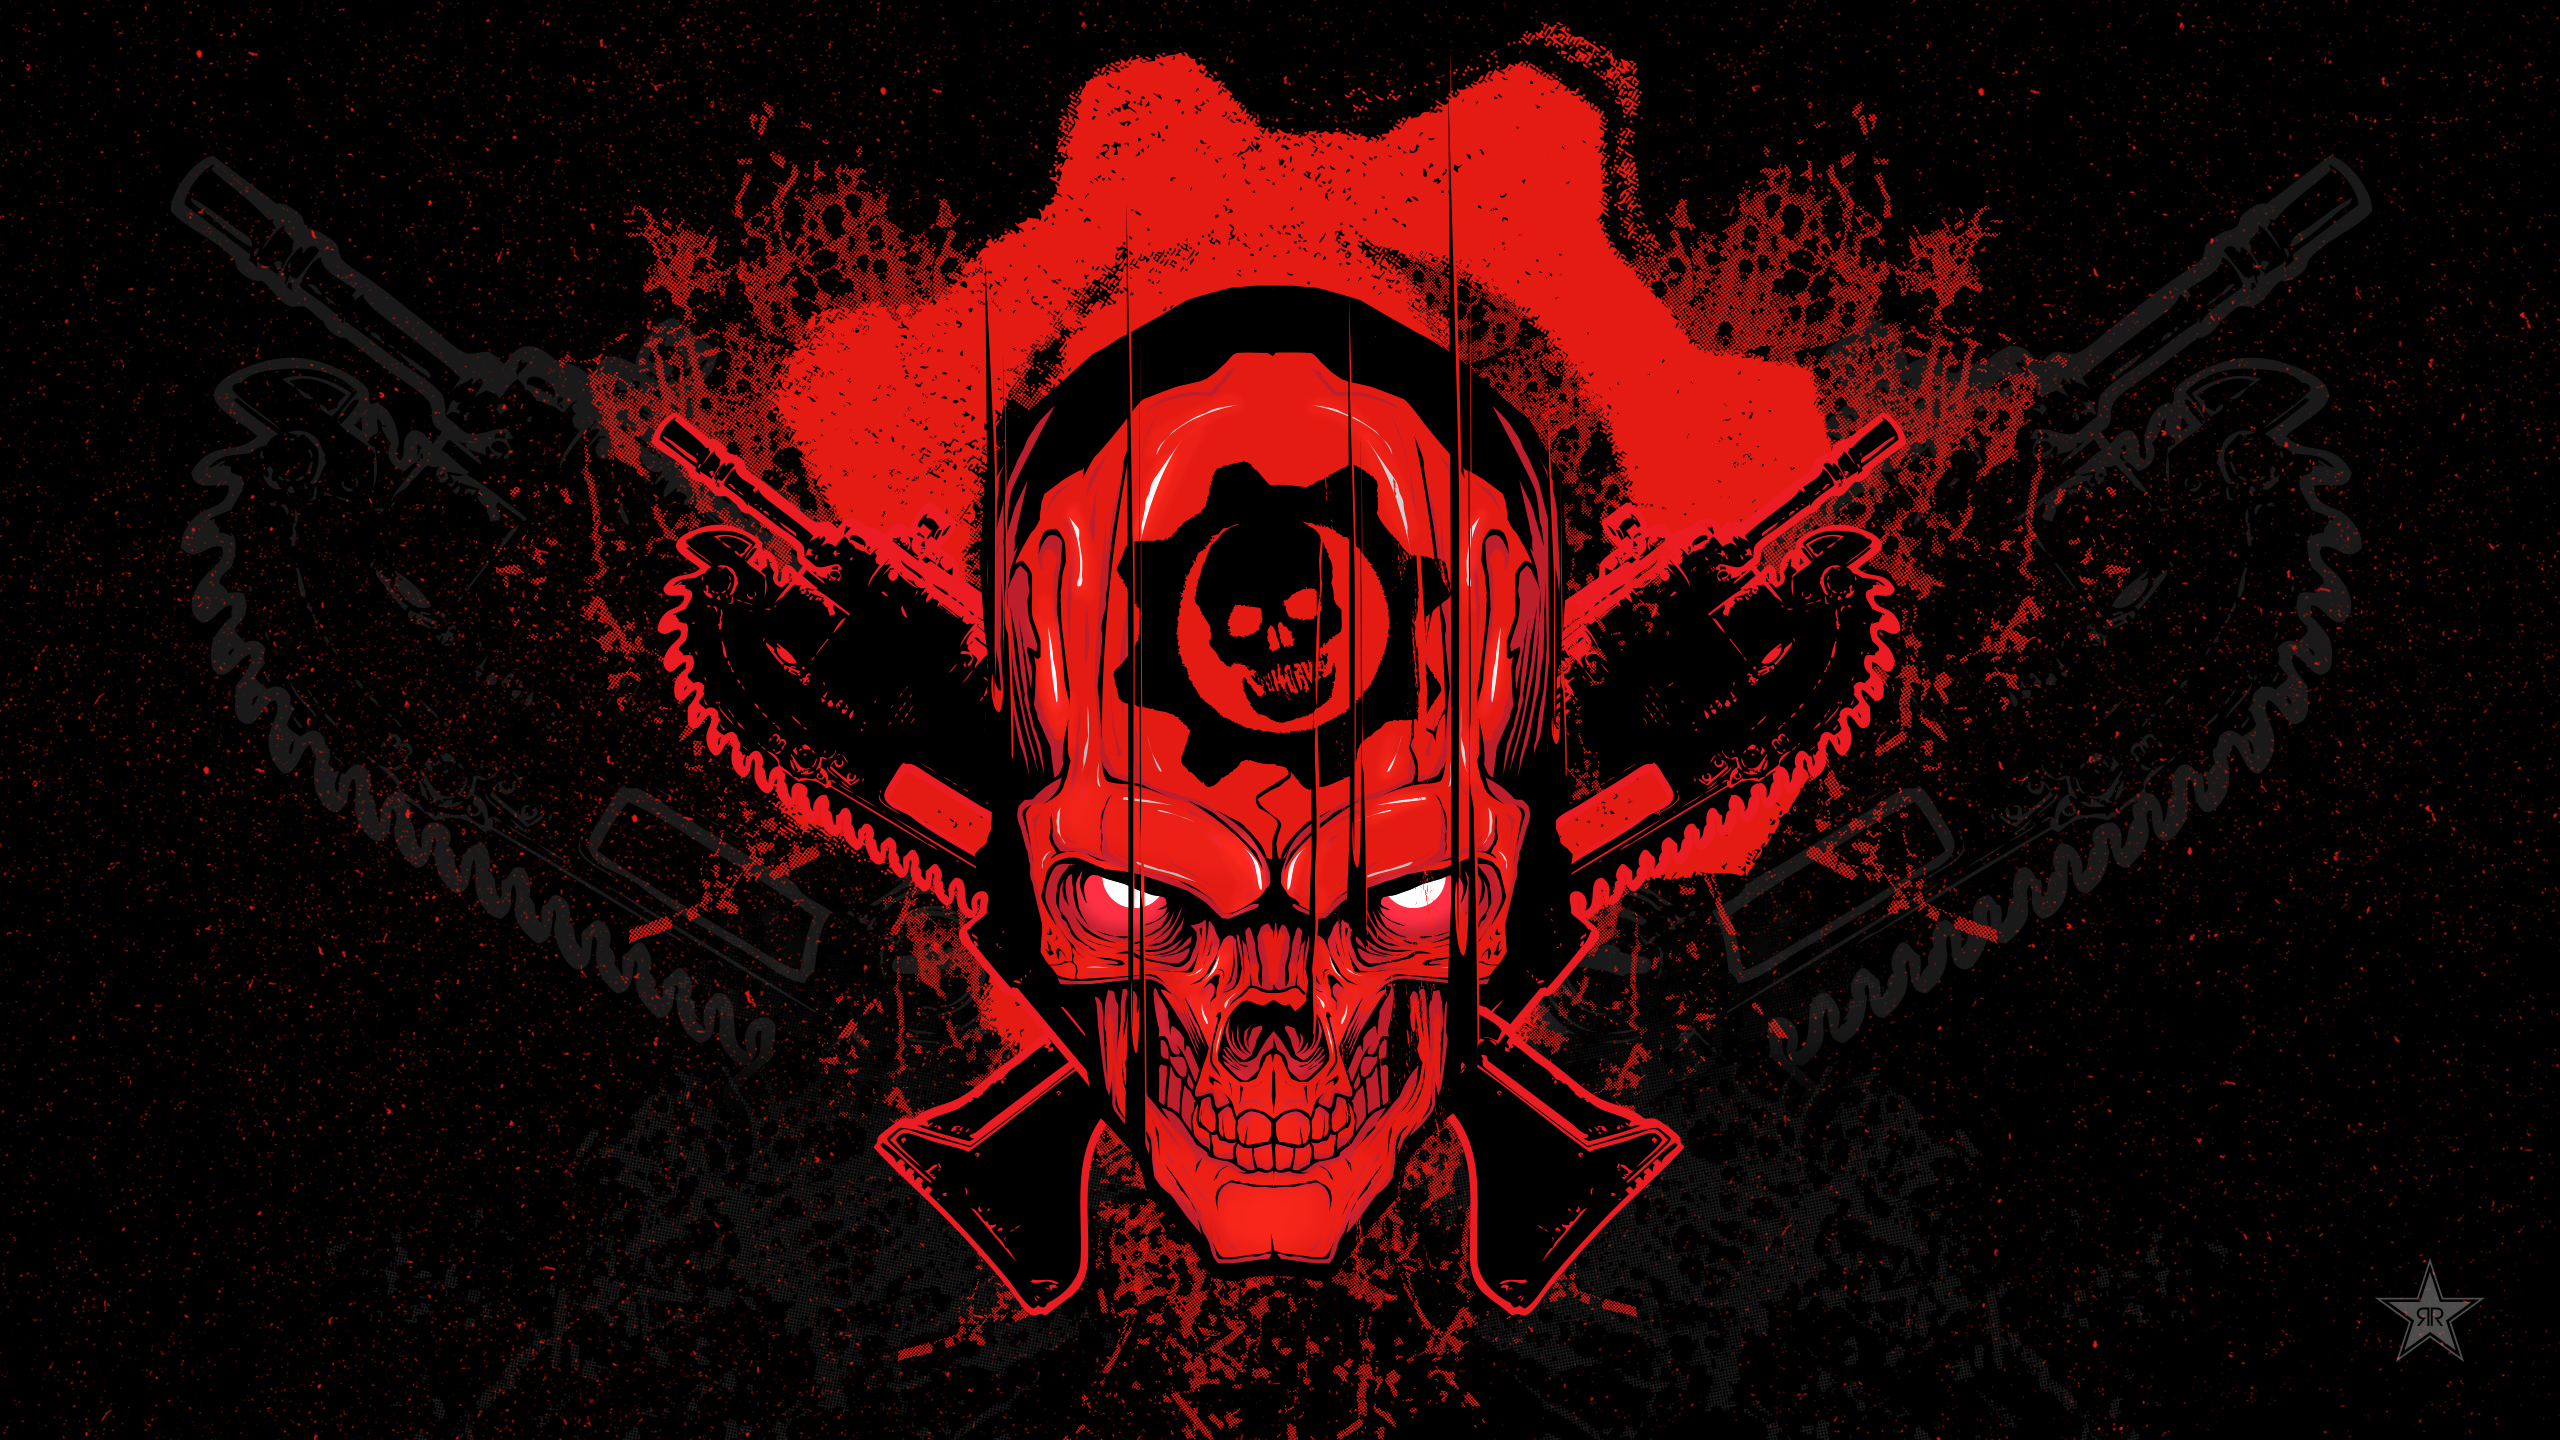 gears of war 4 skull, hd games, 4k wallpapers, images, backgrounds